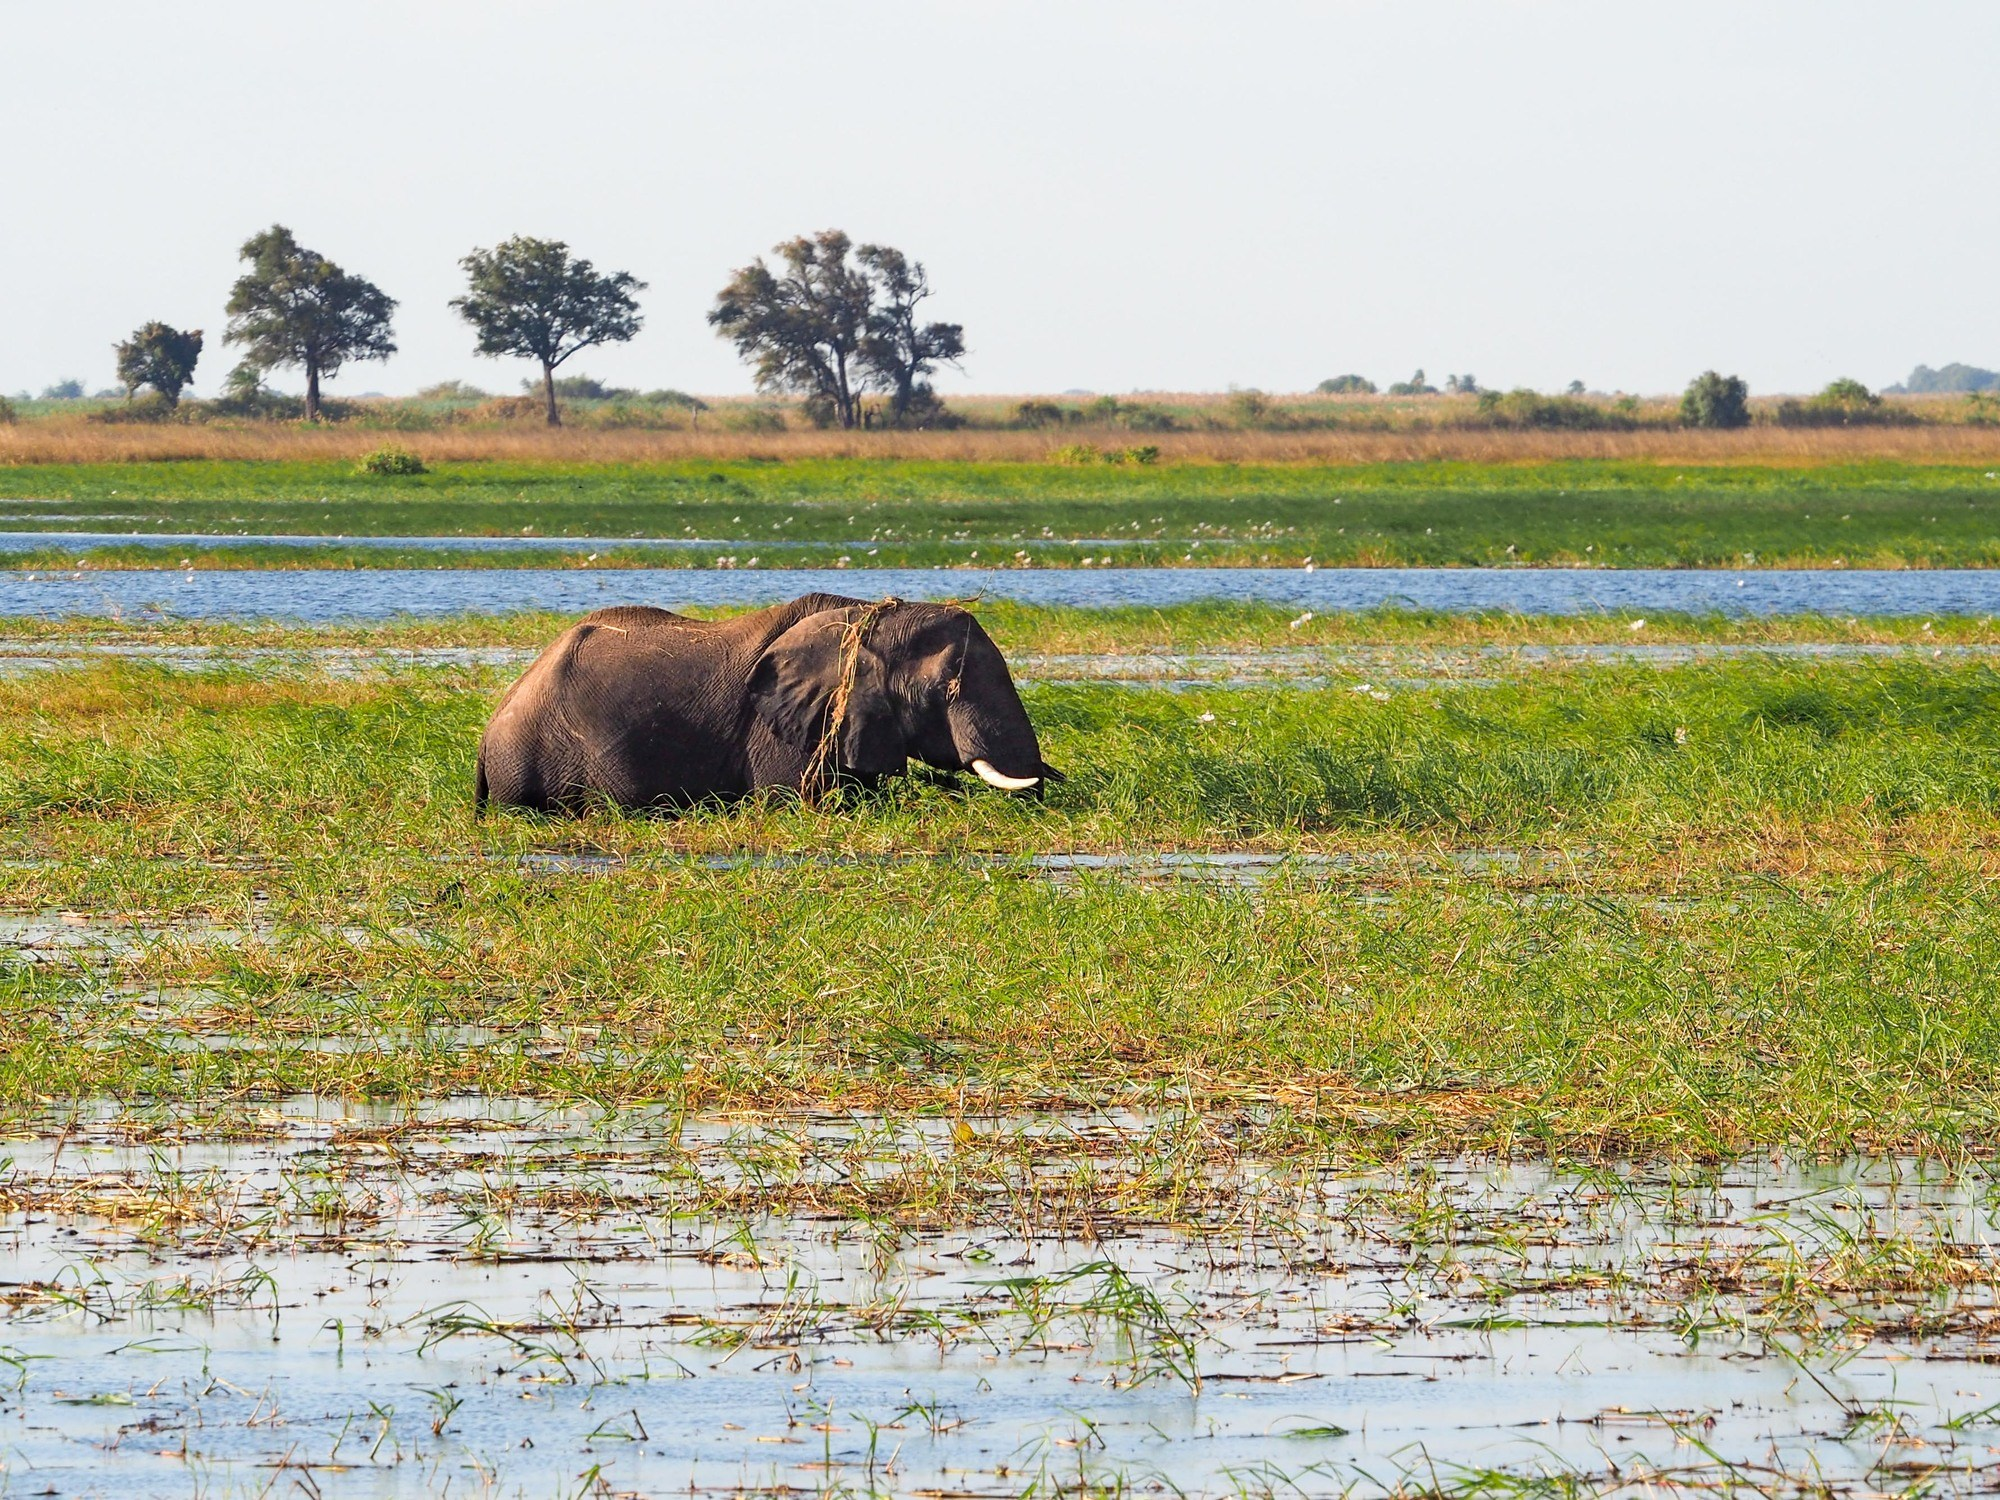 Elephant in Chobe National Park